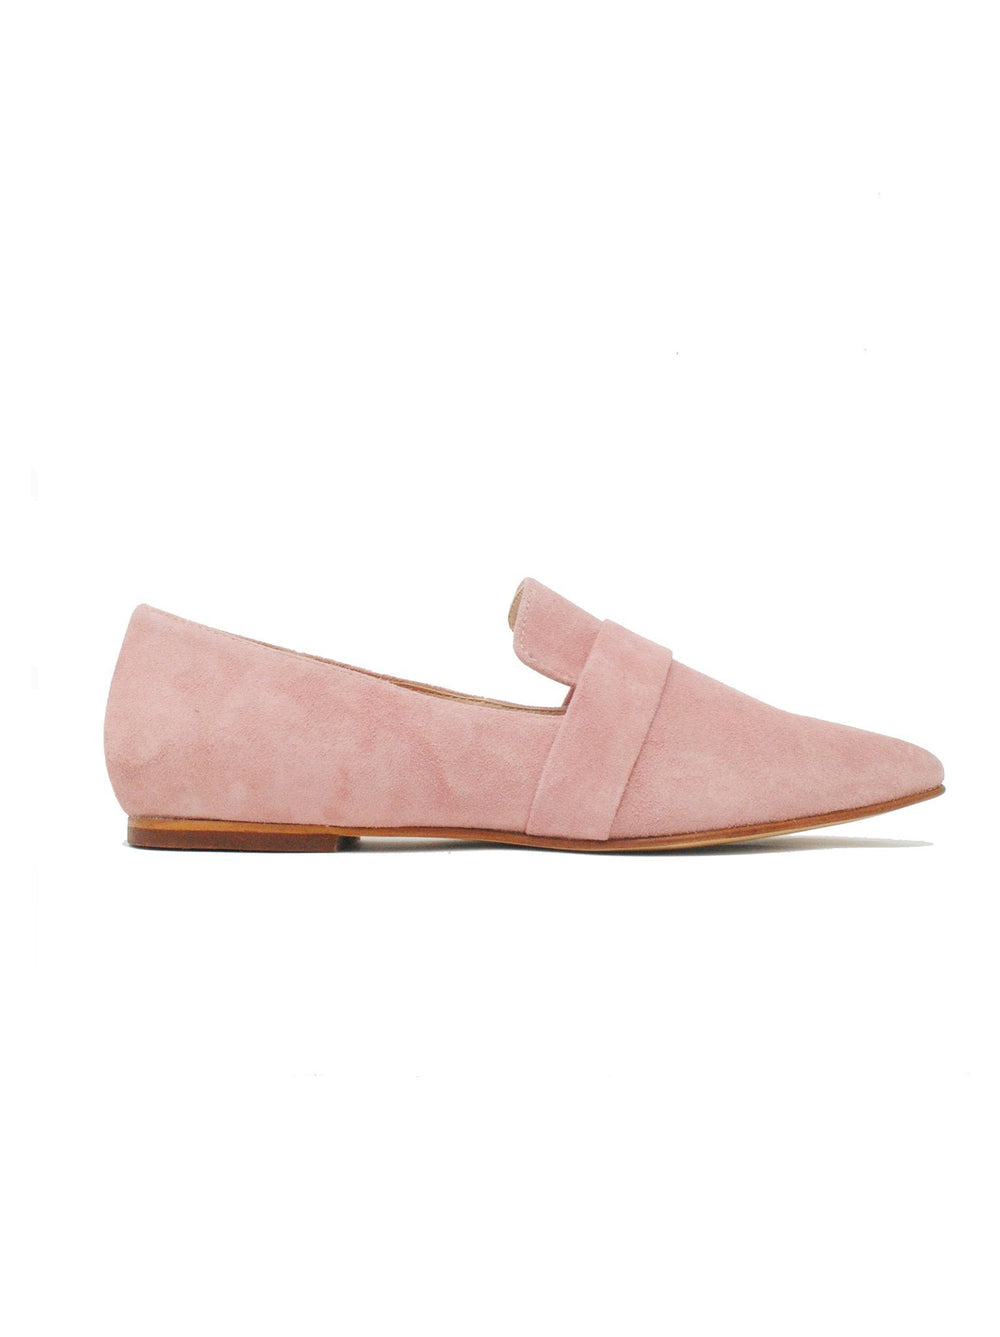 Lisbeth Evening Slipper